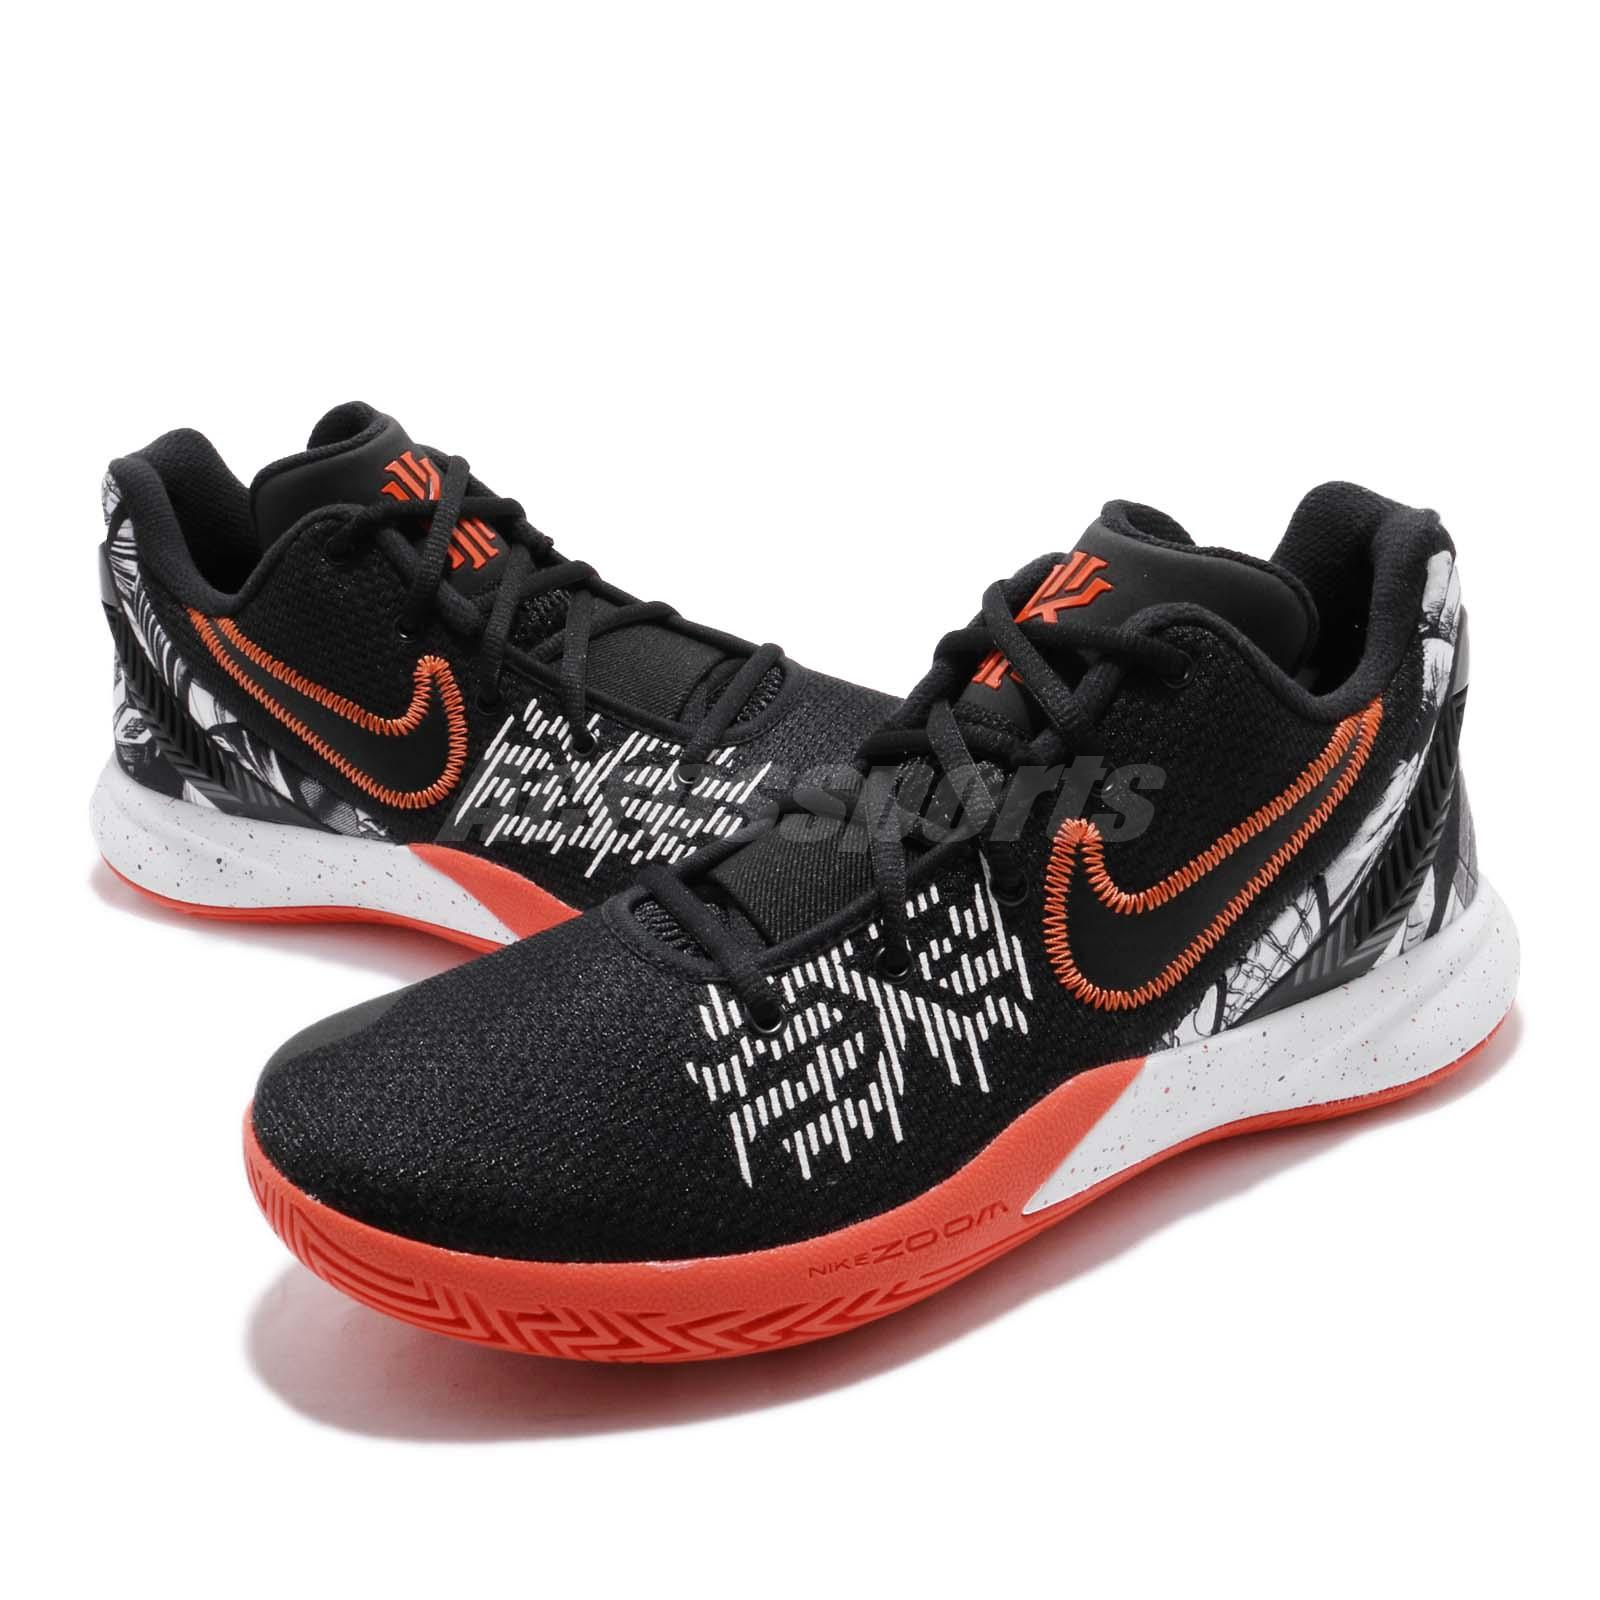 save off f0be5 acb3c Details about Nike Kyrie Flytrap II EP Black Red Logo Irving Mens  Basketball Shoes AO4438-007